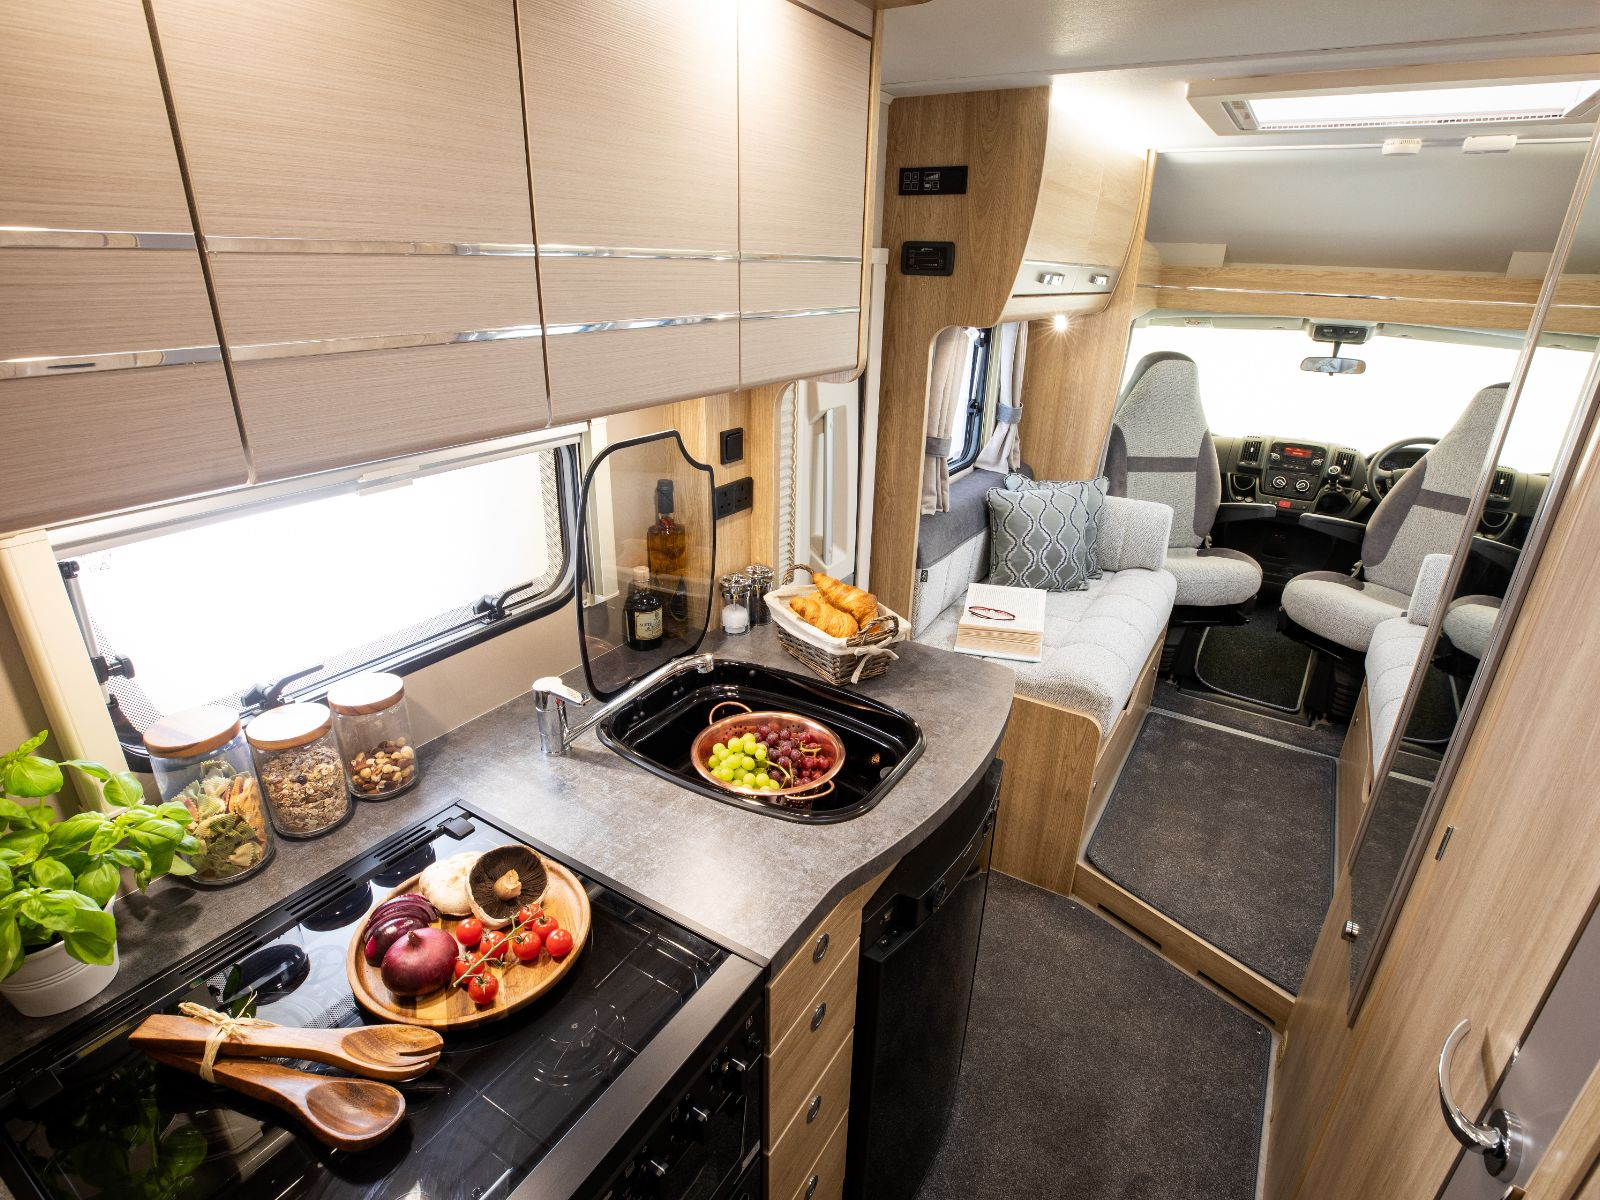 Kitchen layout with prepared food and a view of the lounge and driving area